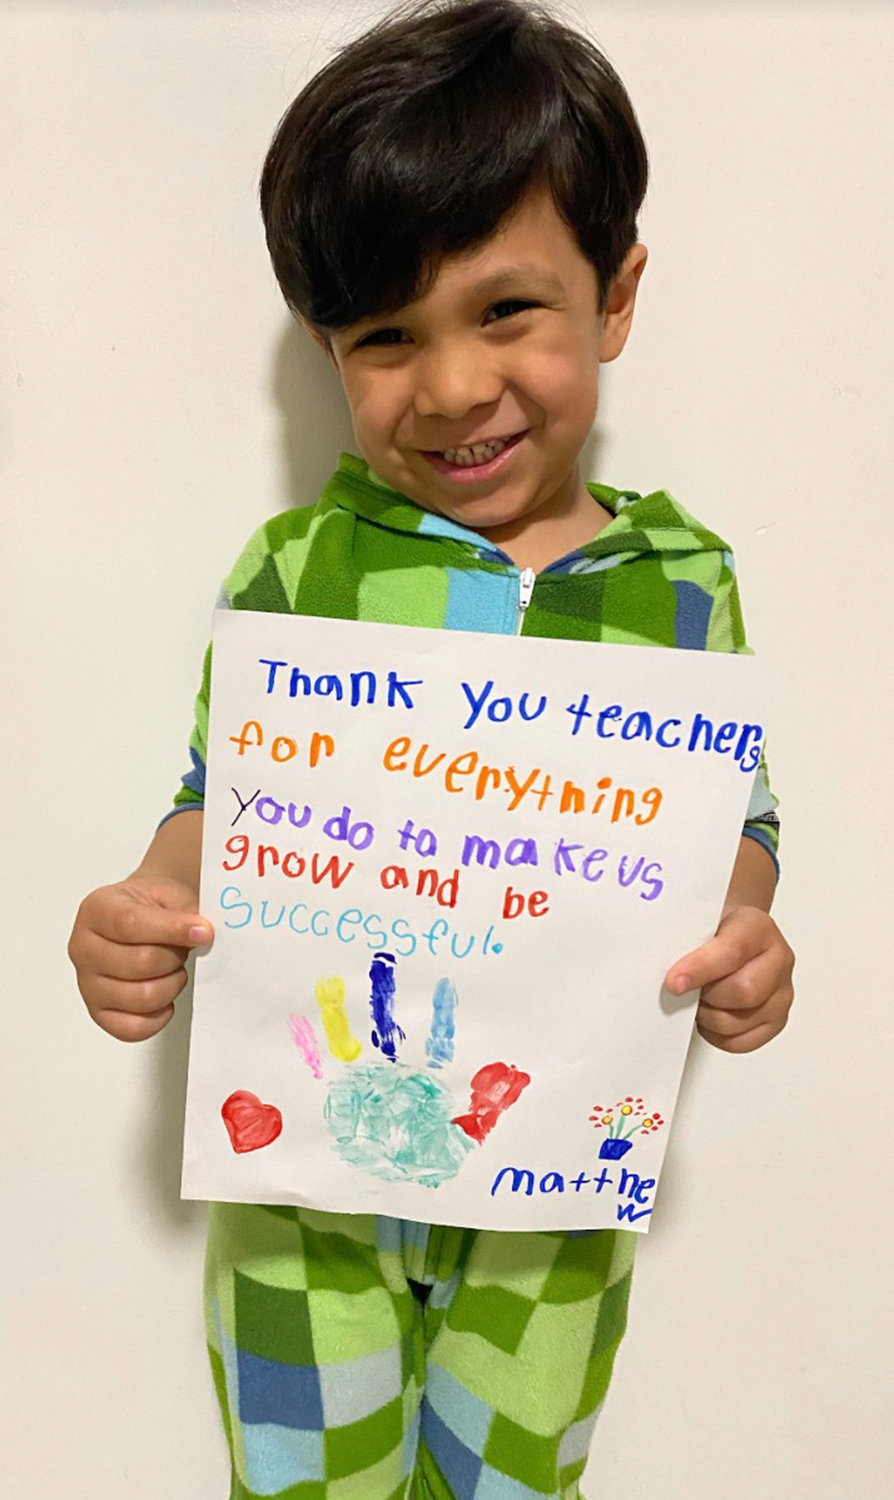 Chestnut Street student Matthew Ortiz drew a special thank-you note for his teachers.